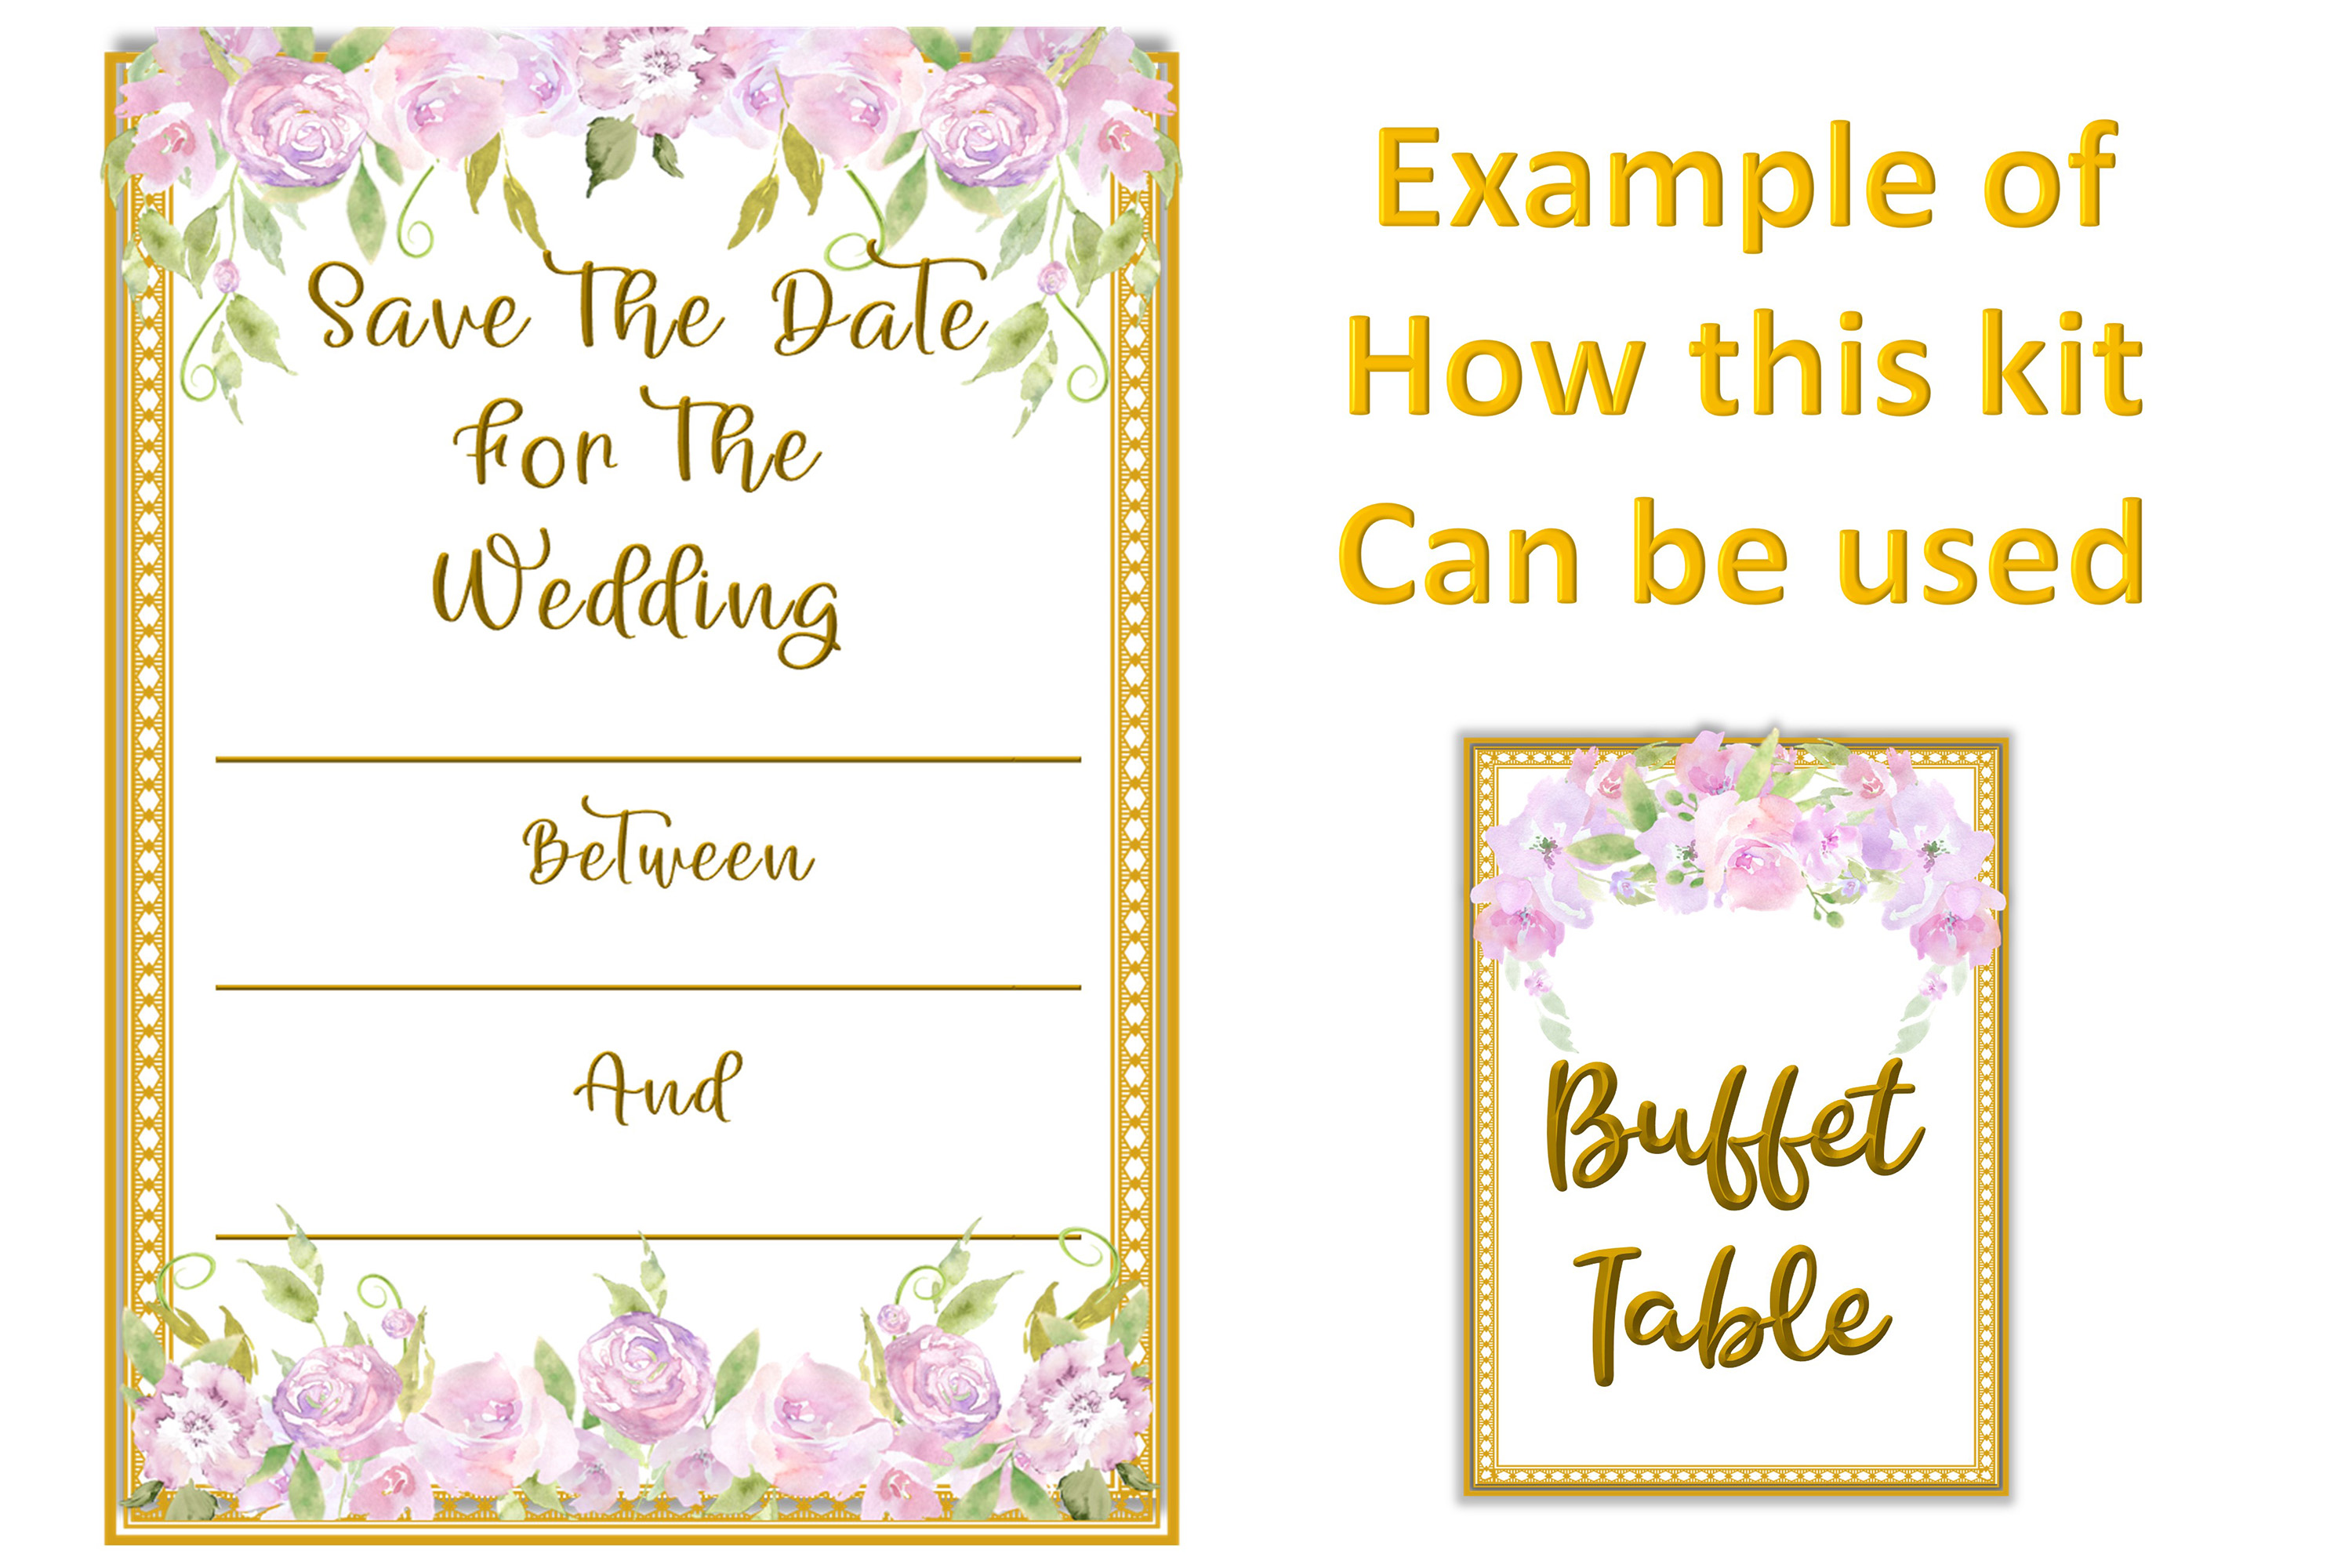 Water colour Wedding Flowers CLipart Kit Commercial Use example image 5